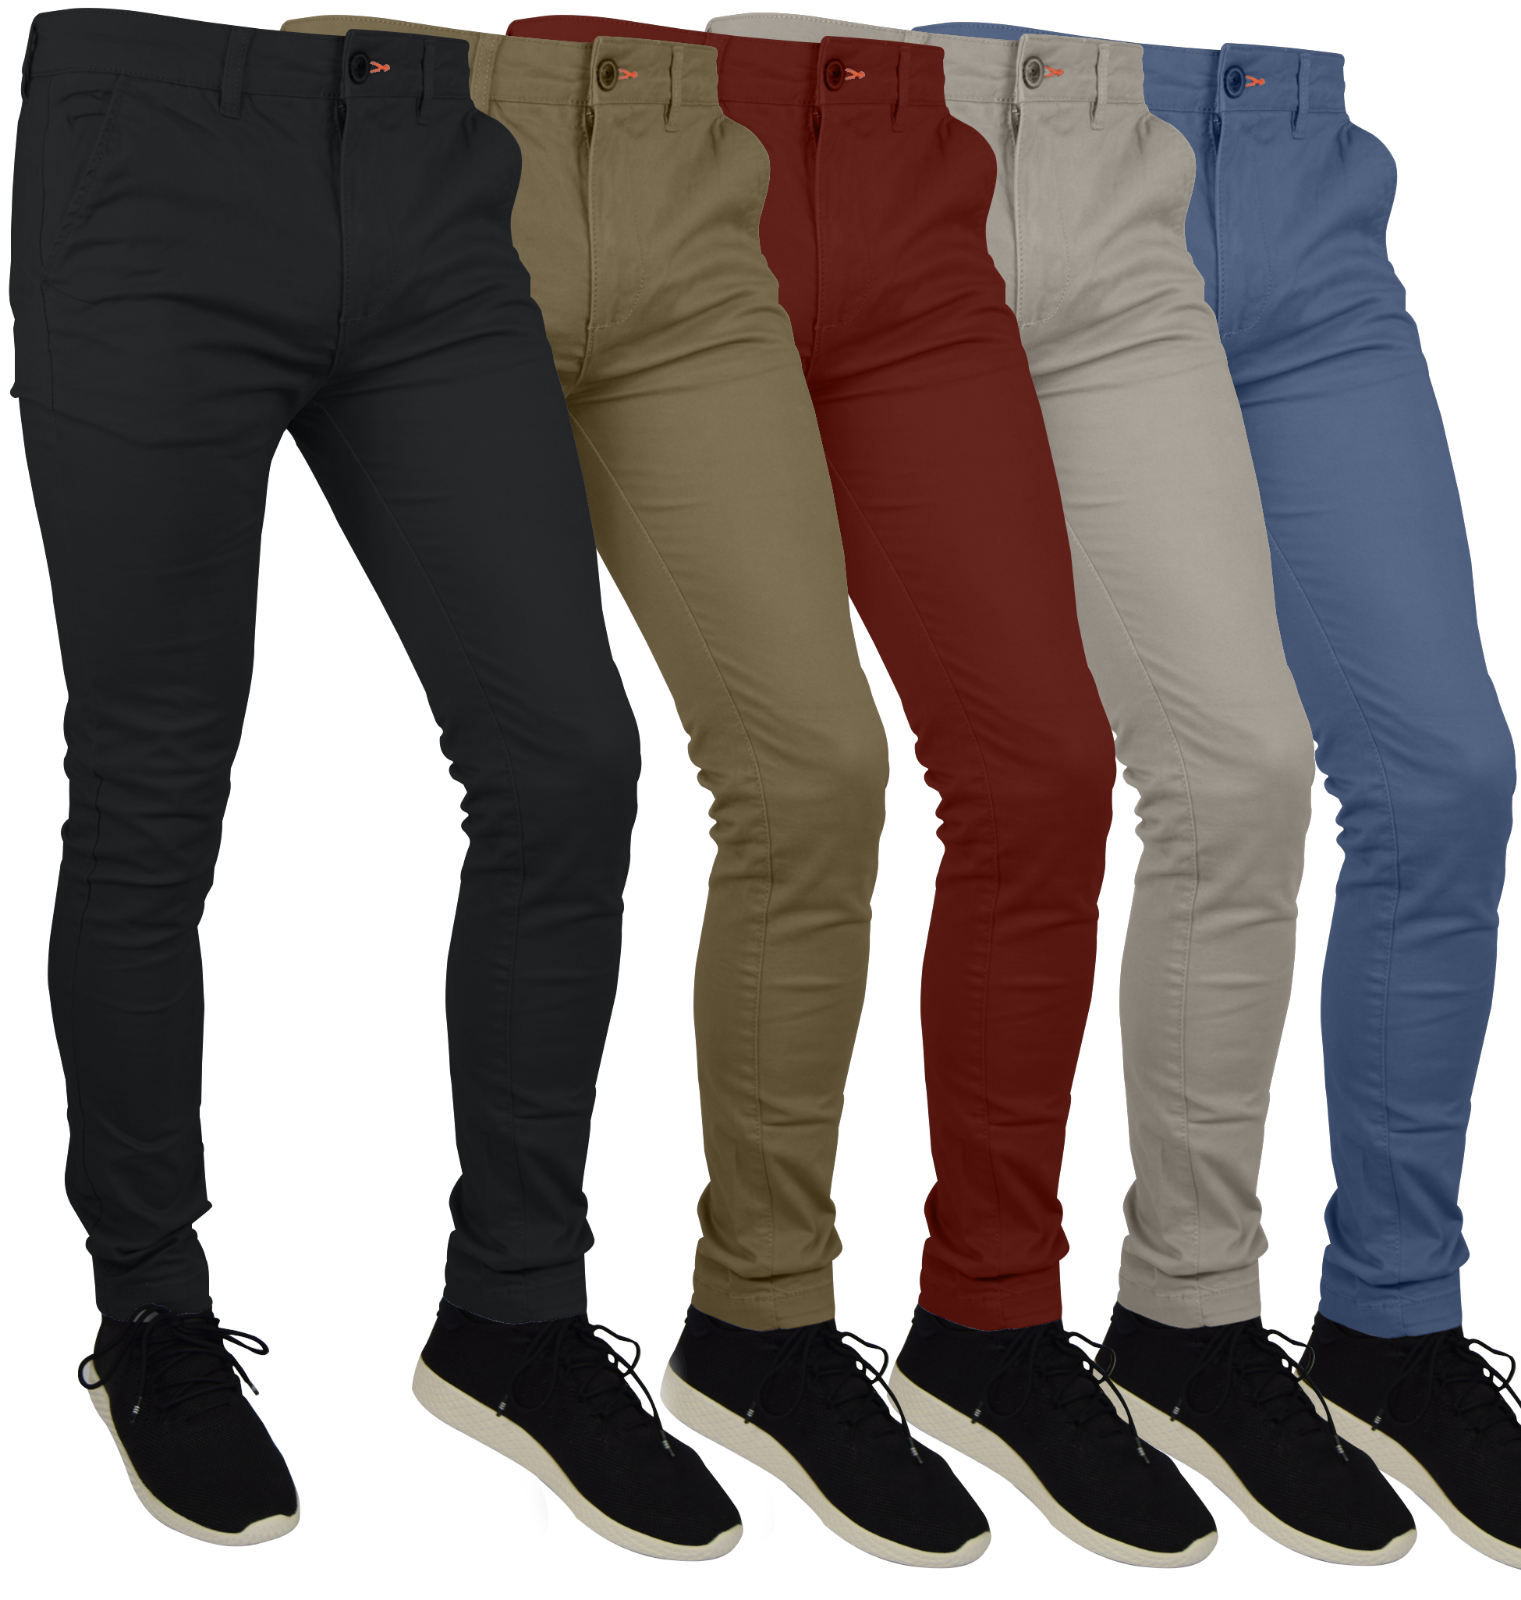 Mens Skinny Fit Stretch Chino Trousers Casual Flat Front Super Skinny Pants Clothing, Shoes & Accessories